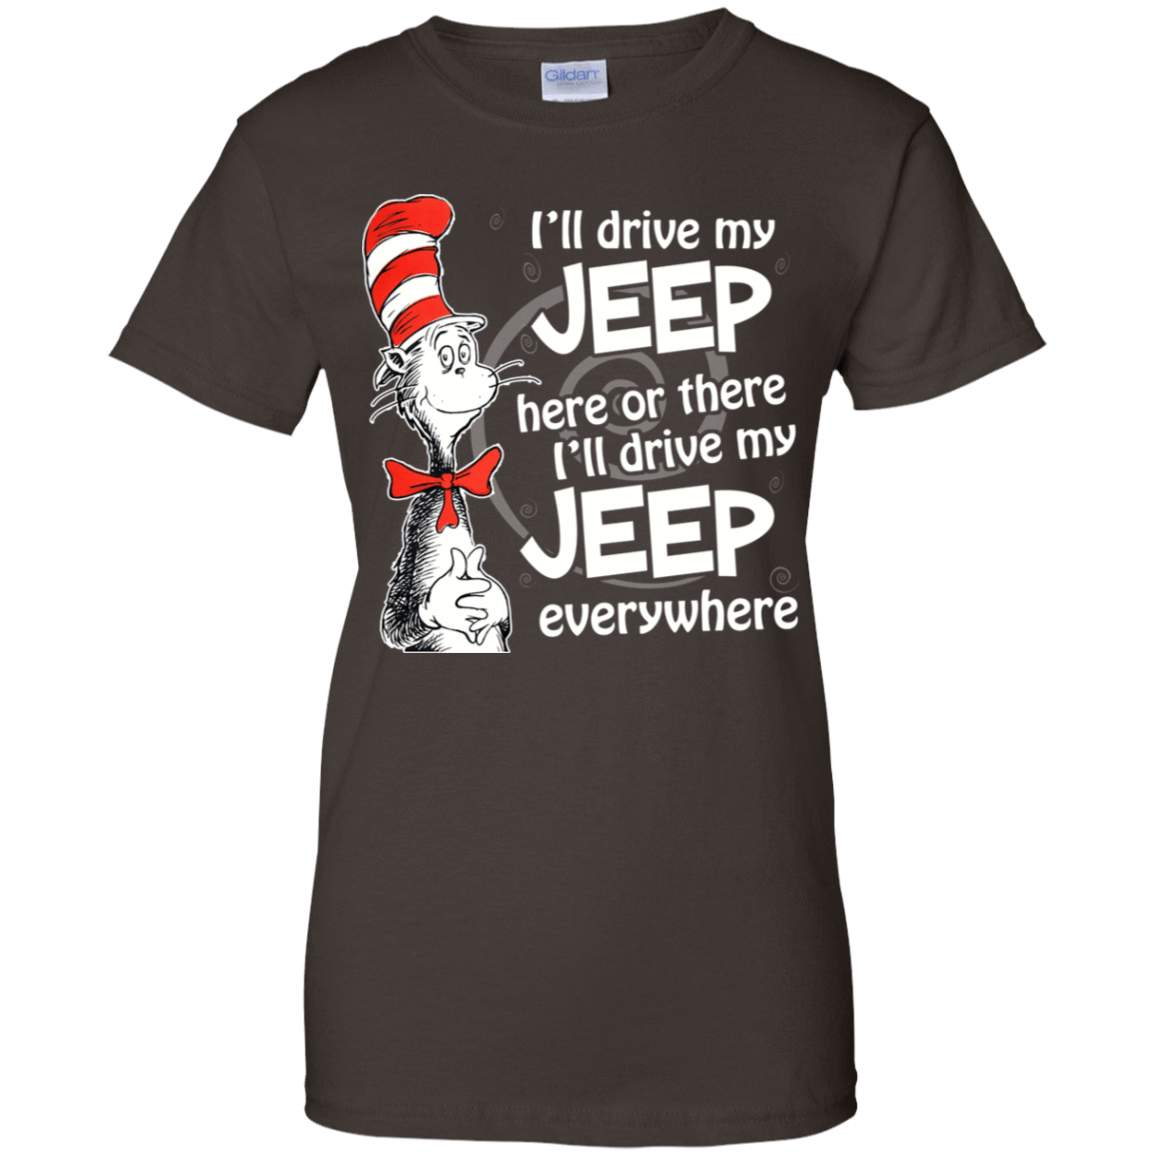 I'll Drive My Jeep Here Or There I'll Driver My Jeep Everywhere 939-9251-73422718-44702 - Tee Ript